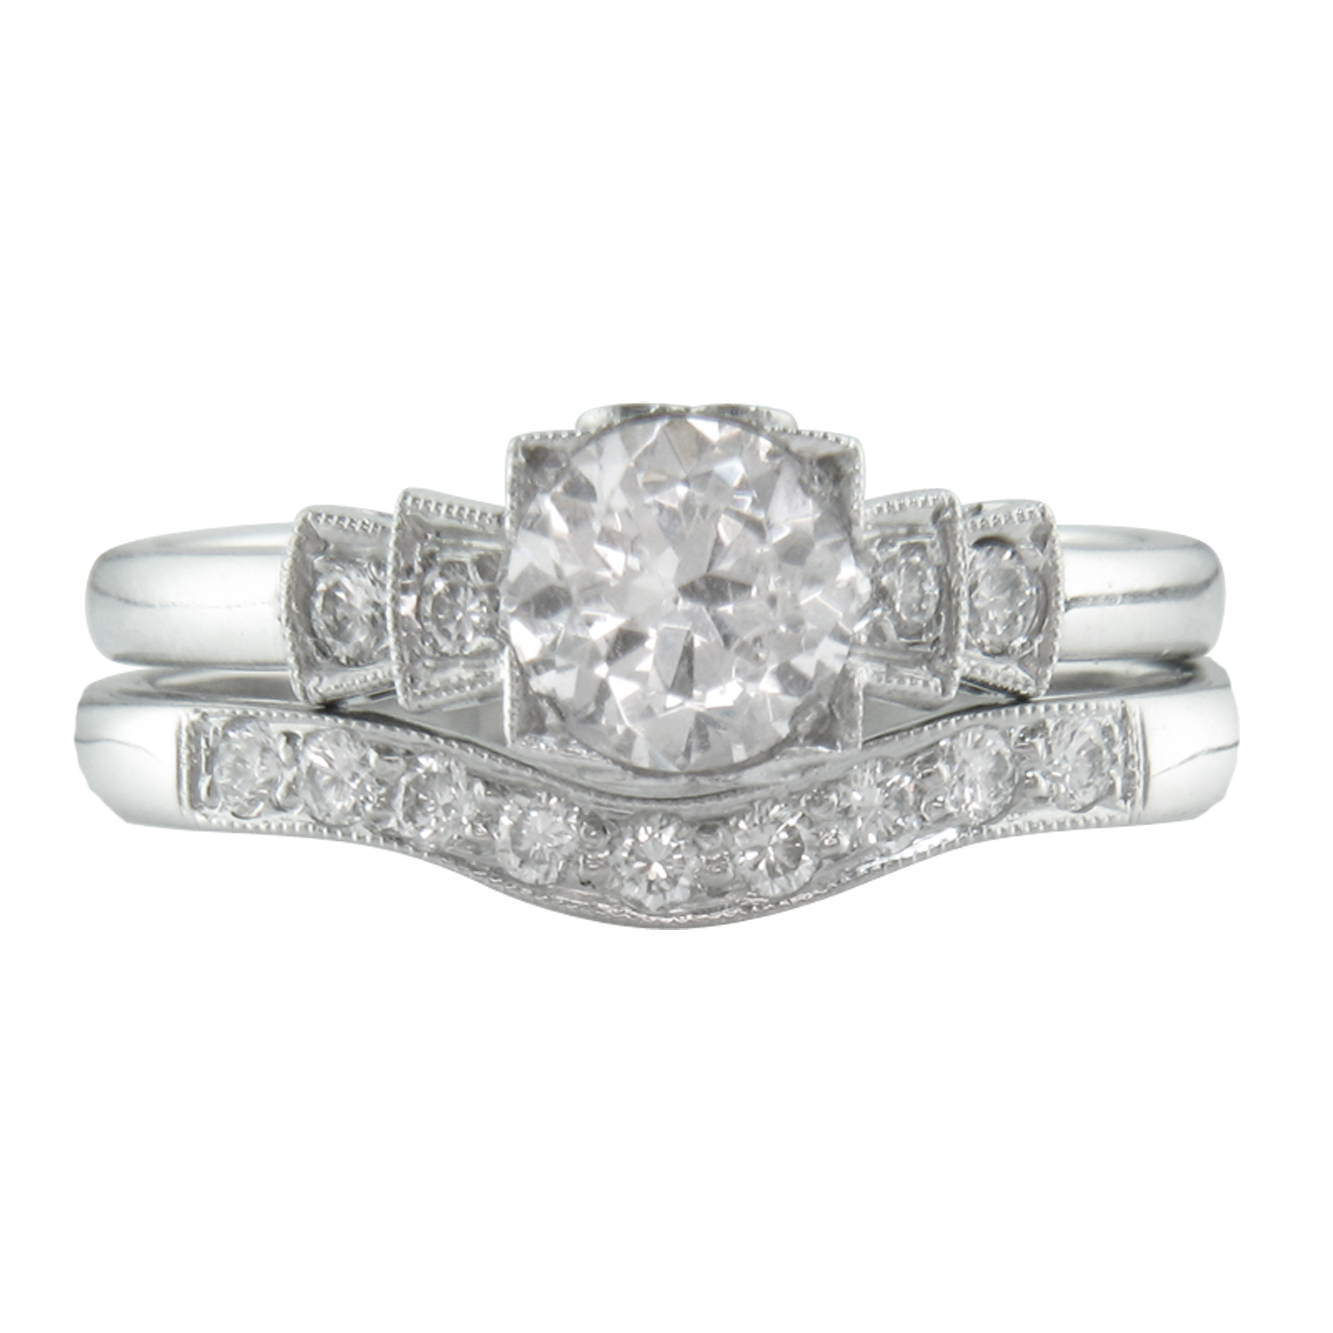 1930s Style Engagement Ring with Heart Motif in White Gold, £2,080 & Curved Diamond Wedding Ring, £735 www.london-victorian-ring.com